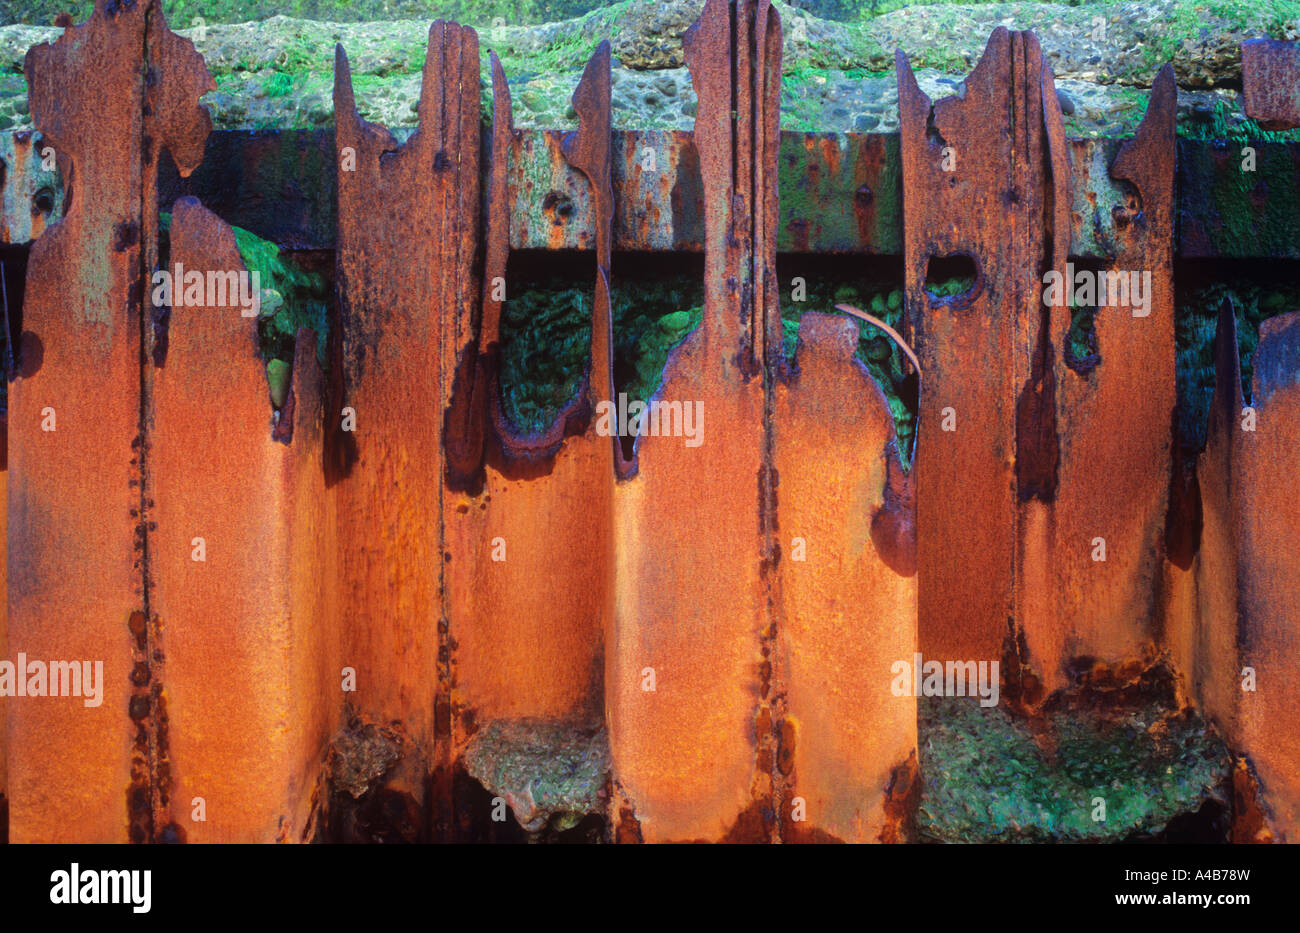 Detail of iron sea defence so rusted and broken as to be useless with eroded concrete seawall behind - Stock Image